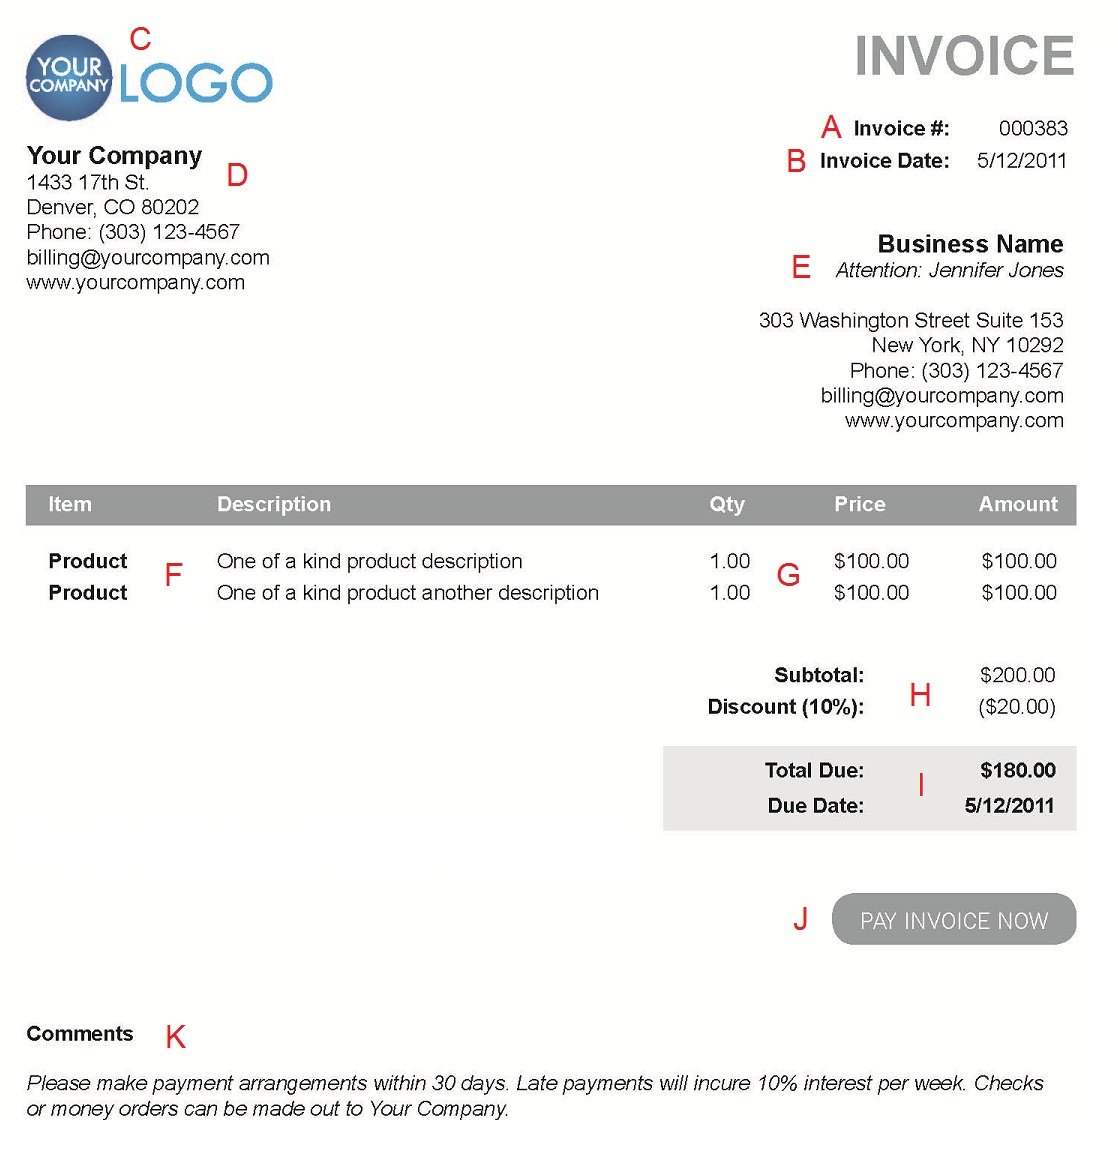 Hucareus  Winsome The  Different Sections Of An Electronic Payment Invoice With Goodlooking A  With Divine Receipts App For Iphone Also Rent Paid Receipt In Addition Receipt Format Template And Red Cross Donation Receipt As Well As Receipt For Charitable Donation Additionally Babies R Us Receipt From Paysimplecom With Hucareus  Goodlooking The  Different Sections Of An Electronic Payment Invoice With Divine A  And Winsome Receipts App For Iphone Also Rent Paid Receipt In Addition Receipt Format Template From Paysimplecom